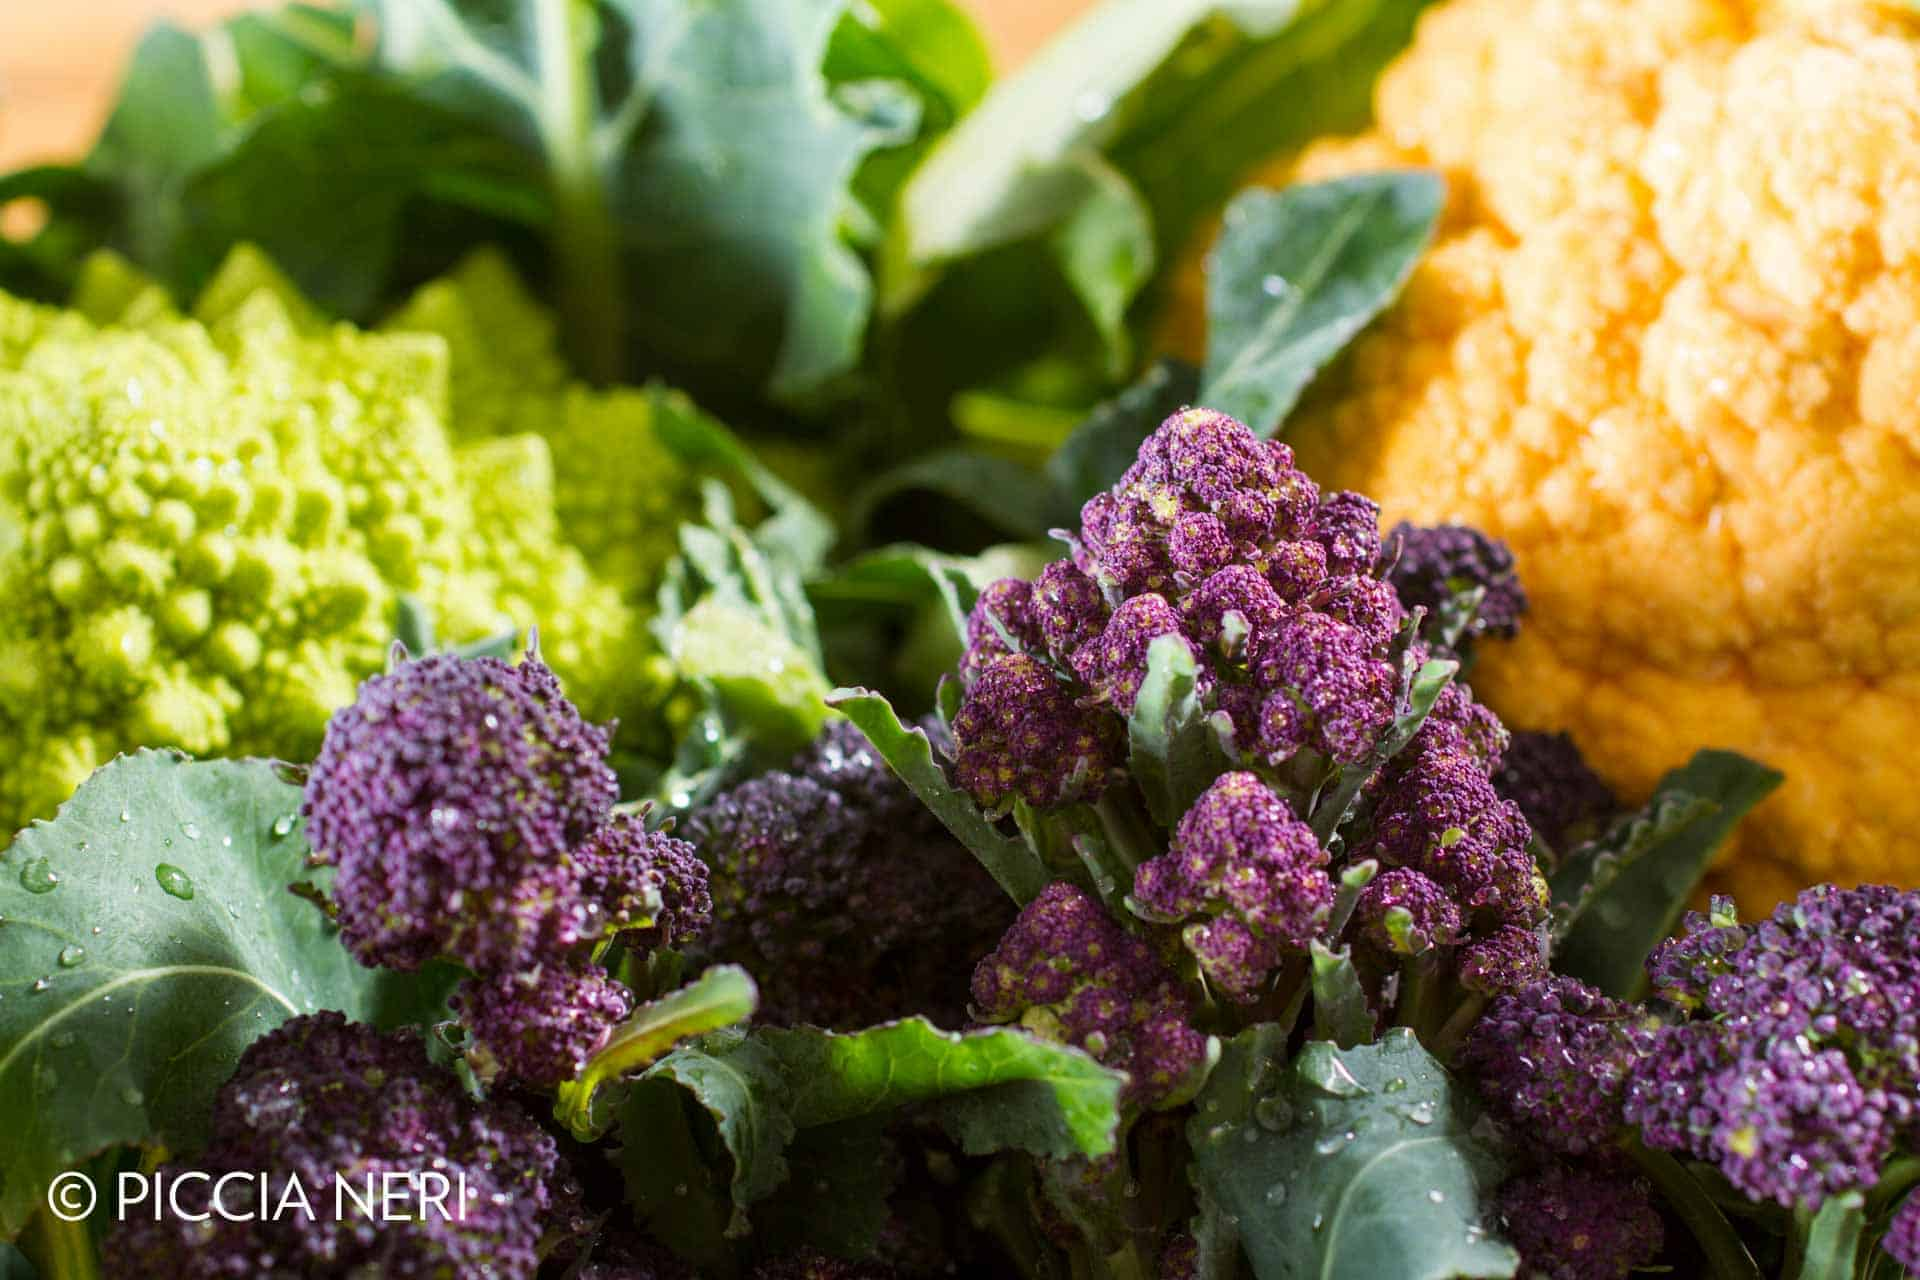 Close up on purple broccoli, with yellow cauliflower and romanesco cauliflower in the background. Wonderful contrast of complementary colours.